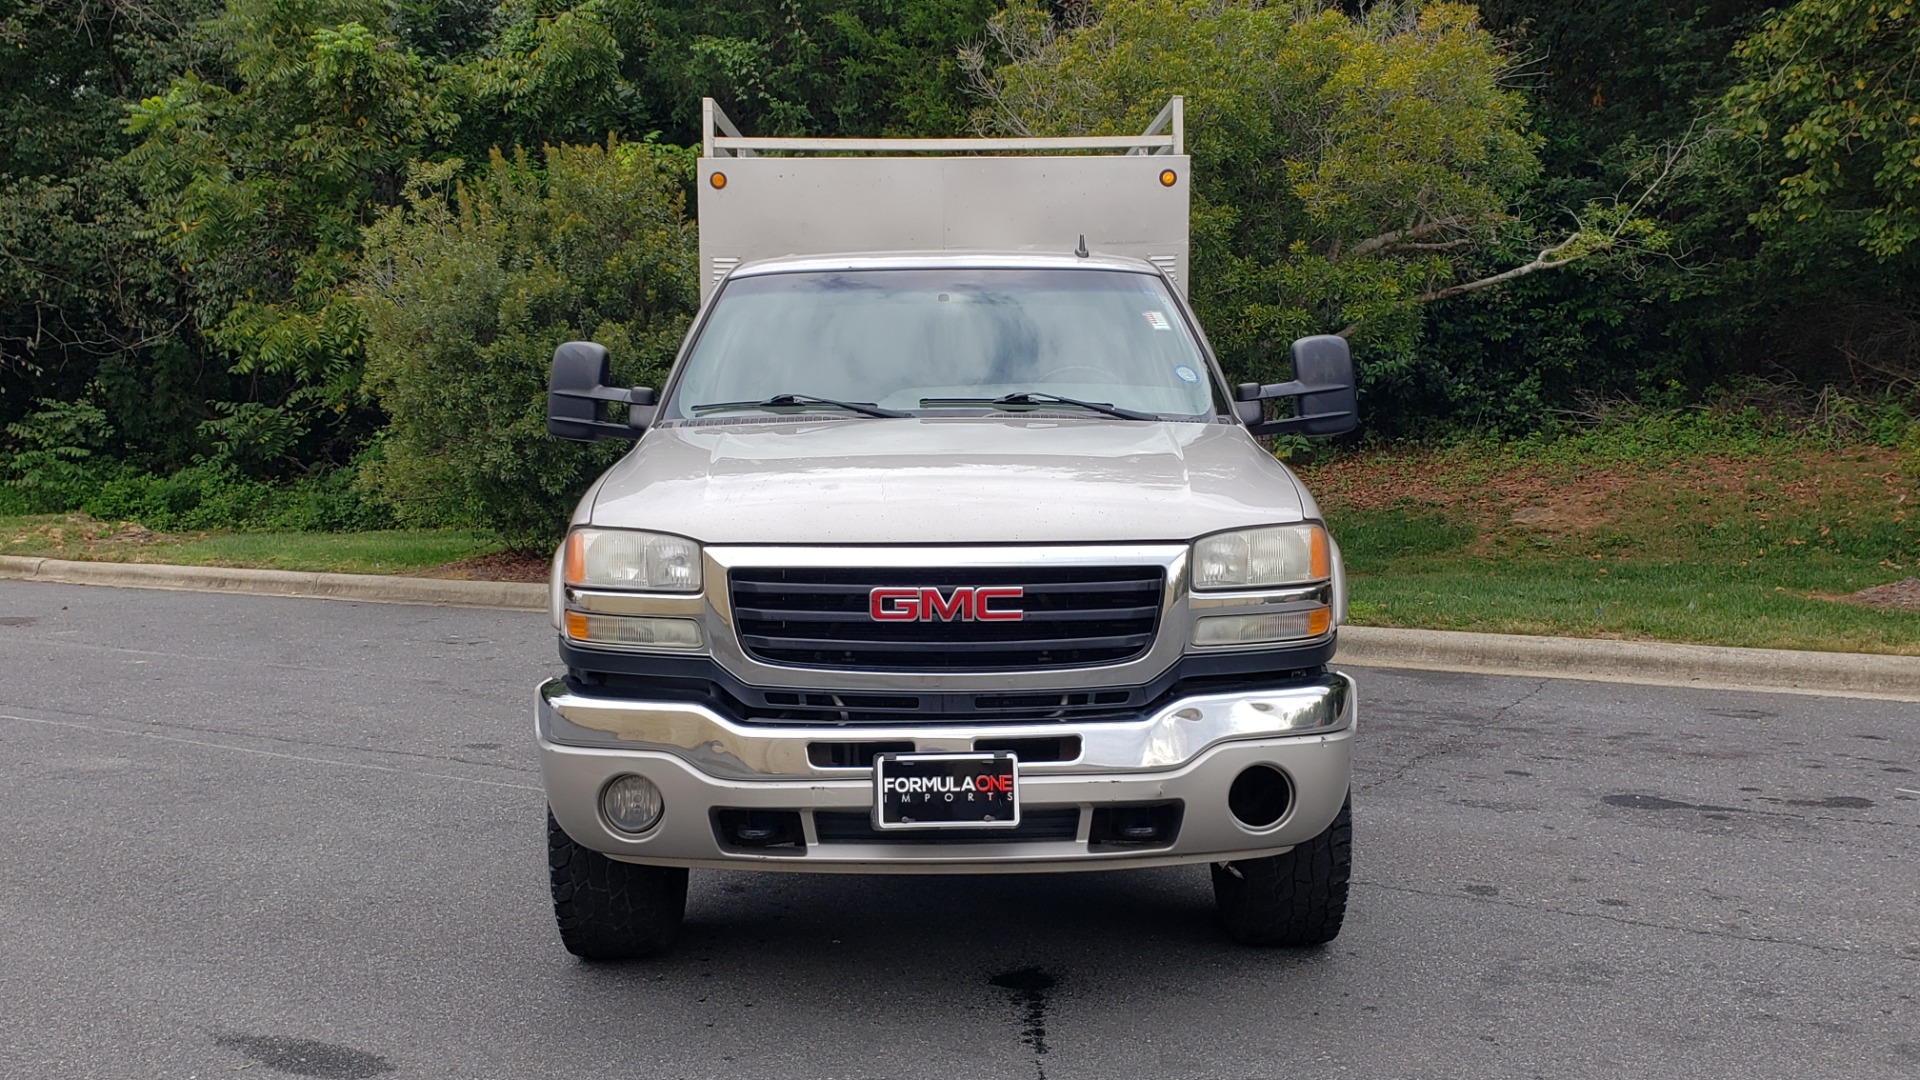 Used 2007 GMC SIERRA 2500HD CLASSIC SLT 4WD / 167WB / 6.6L DURAMAX / DOOMSDAY PREPPER for sale $13,999 at Formula Imports in Charlotte NC 28227 58